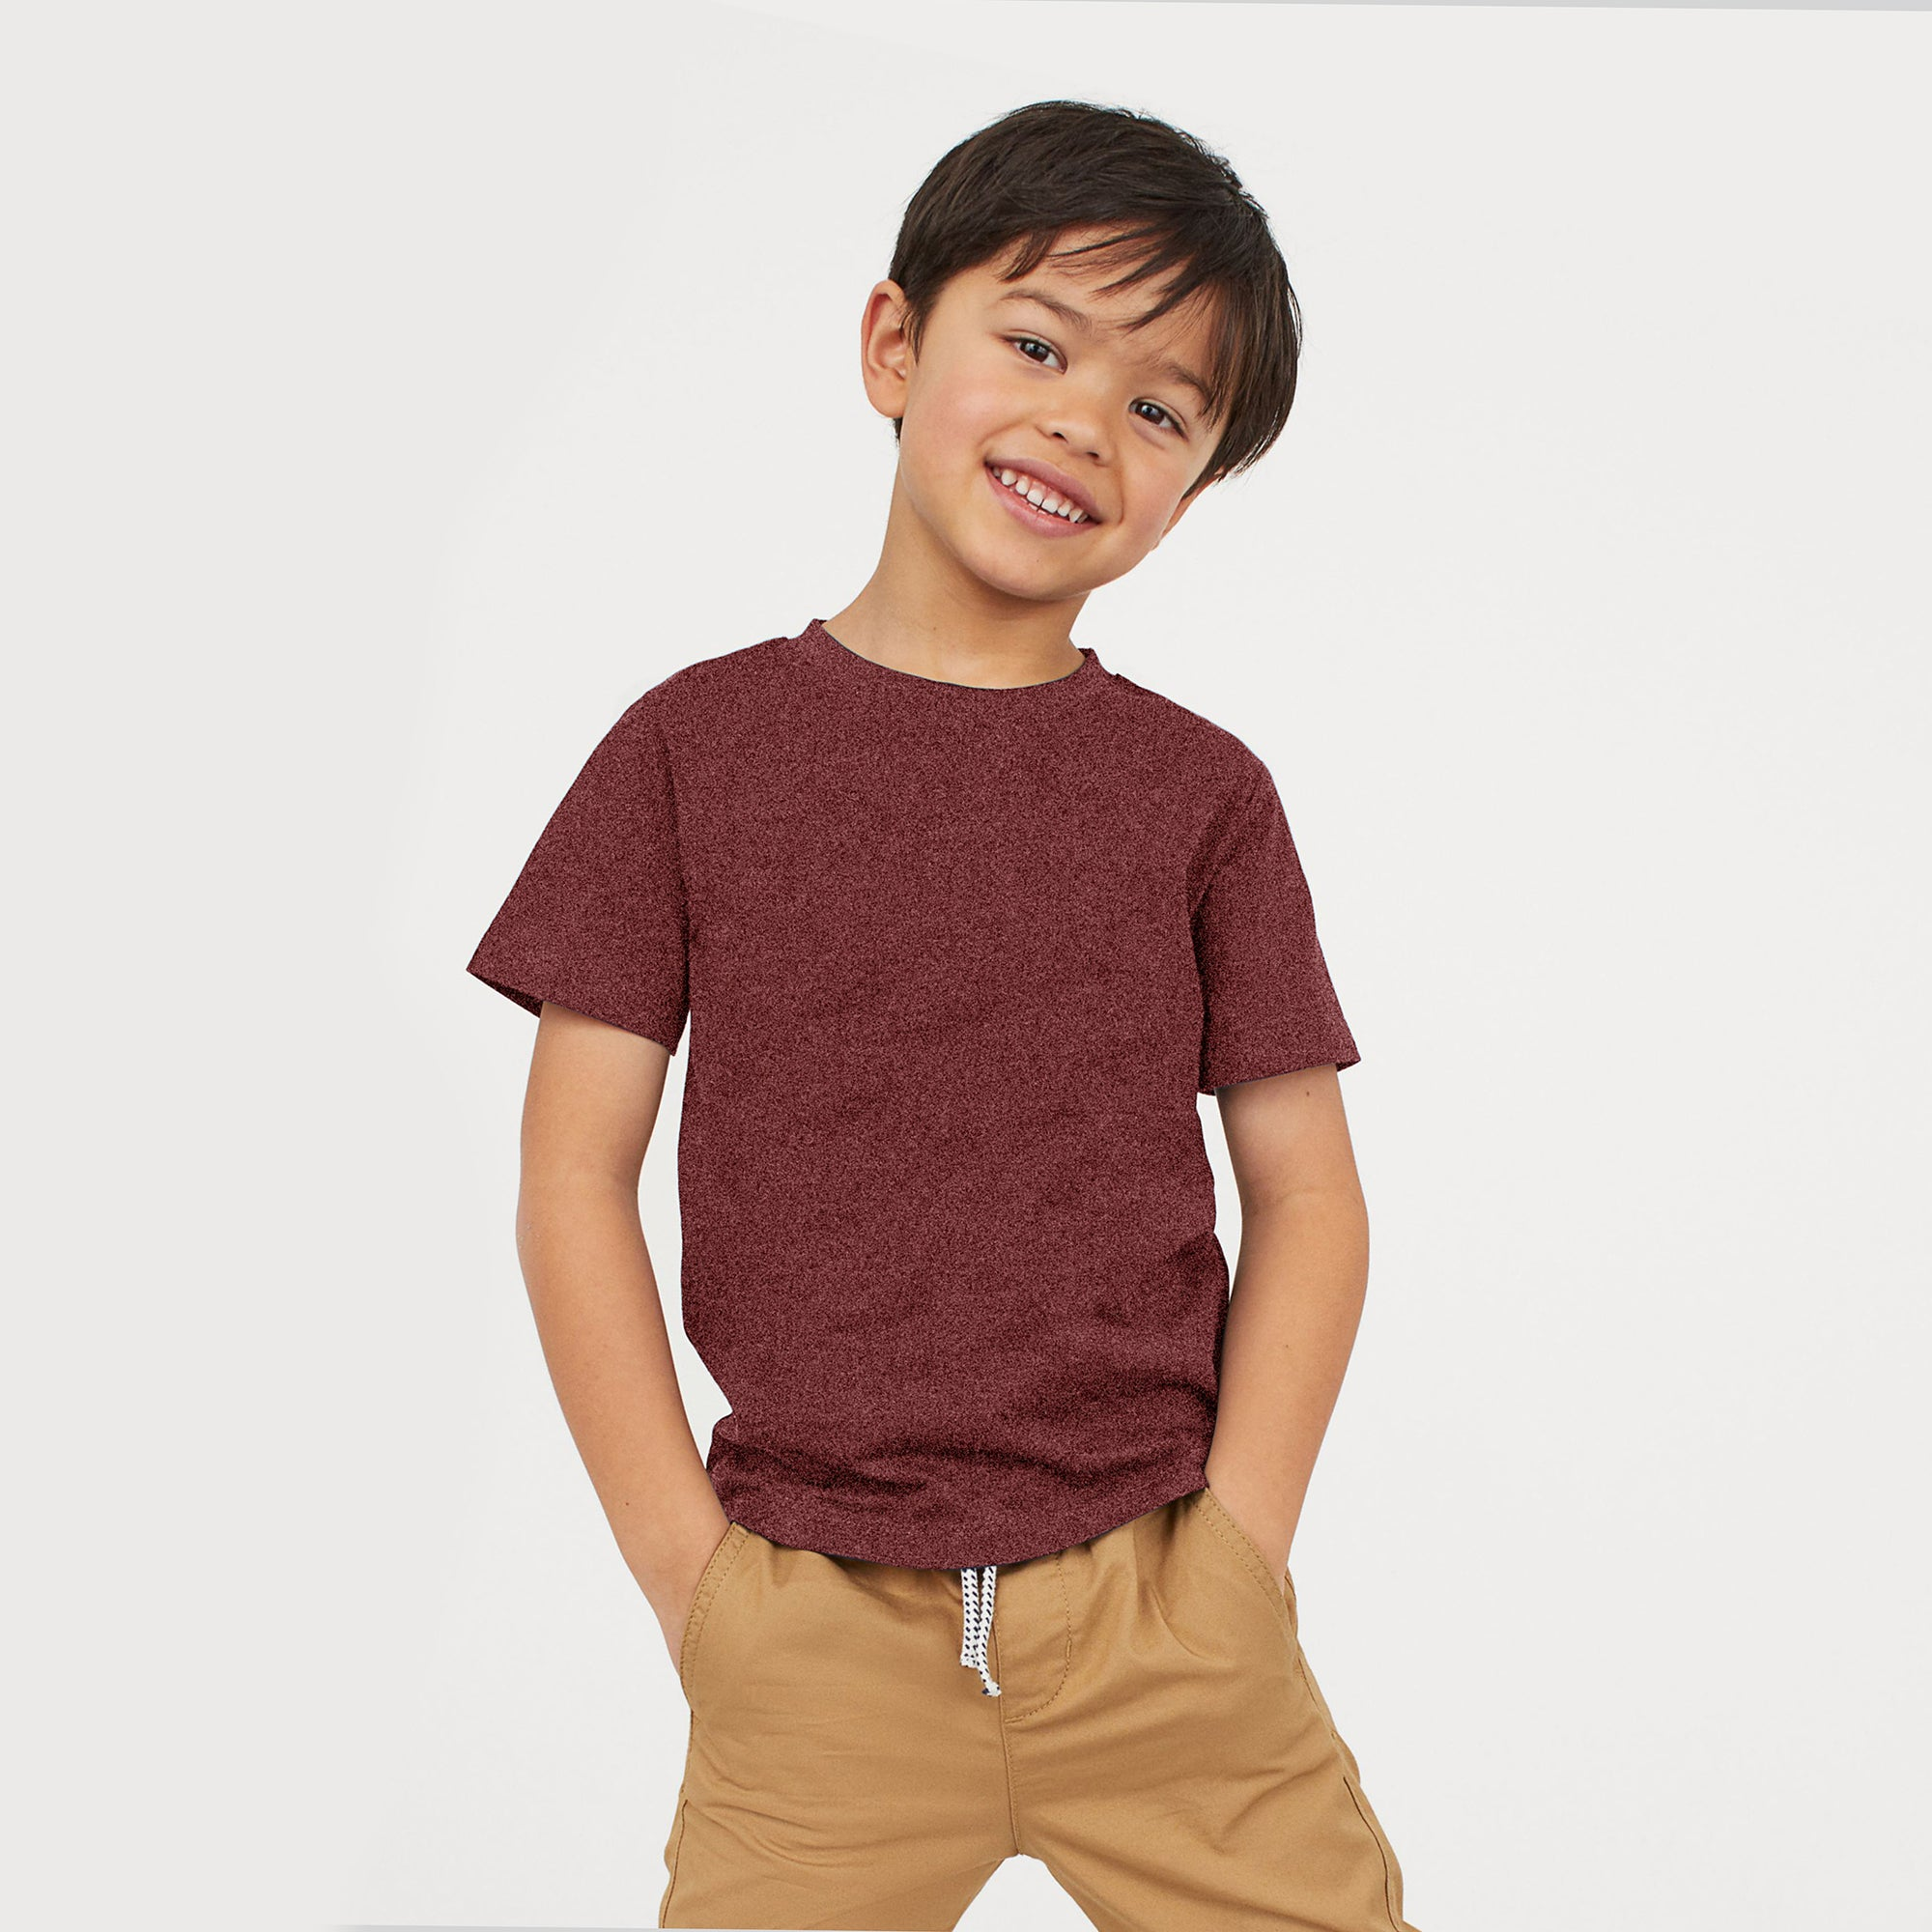 Basic Crew Neck Single Jersey Tee Shirt For Kids-Red Melange-NA11578